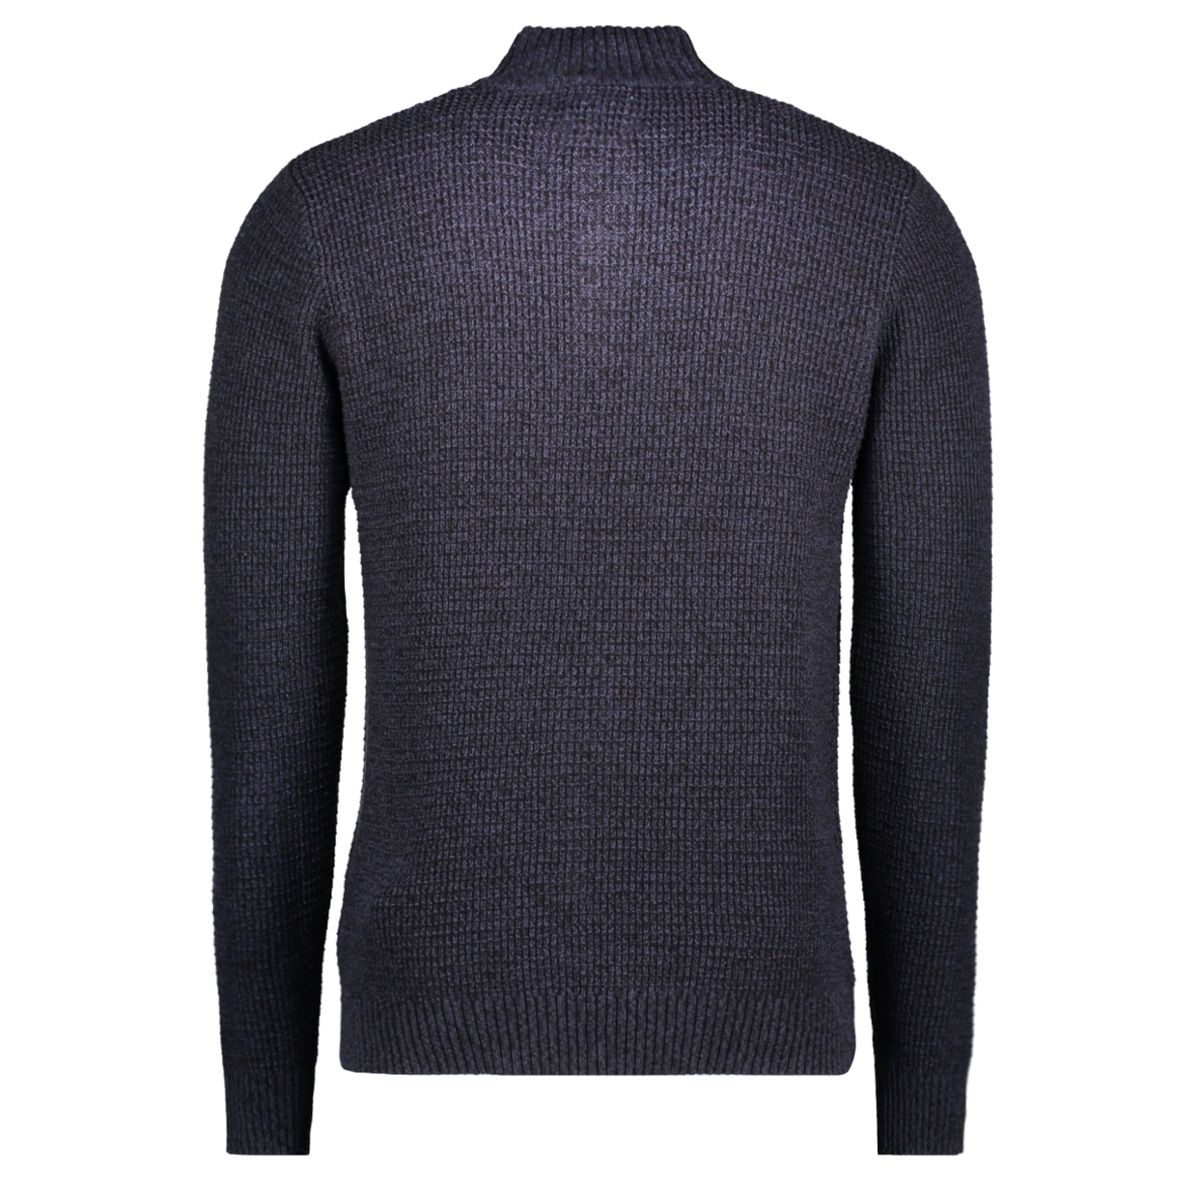 jjvharris knit high neck granddad 12127568 jack & jones trui parisian night